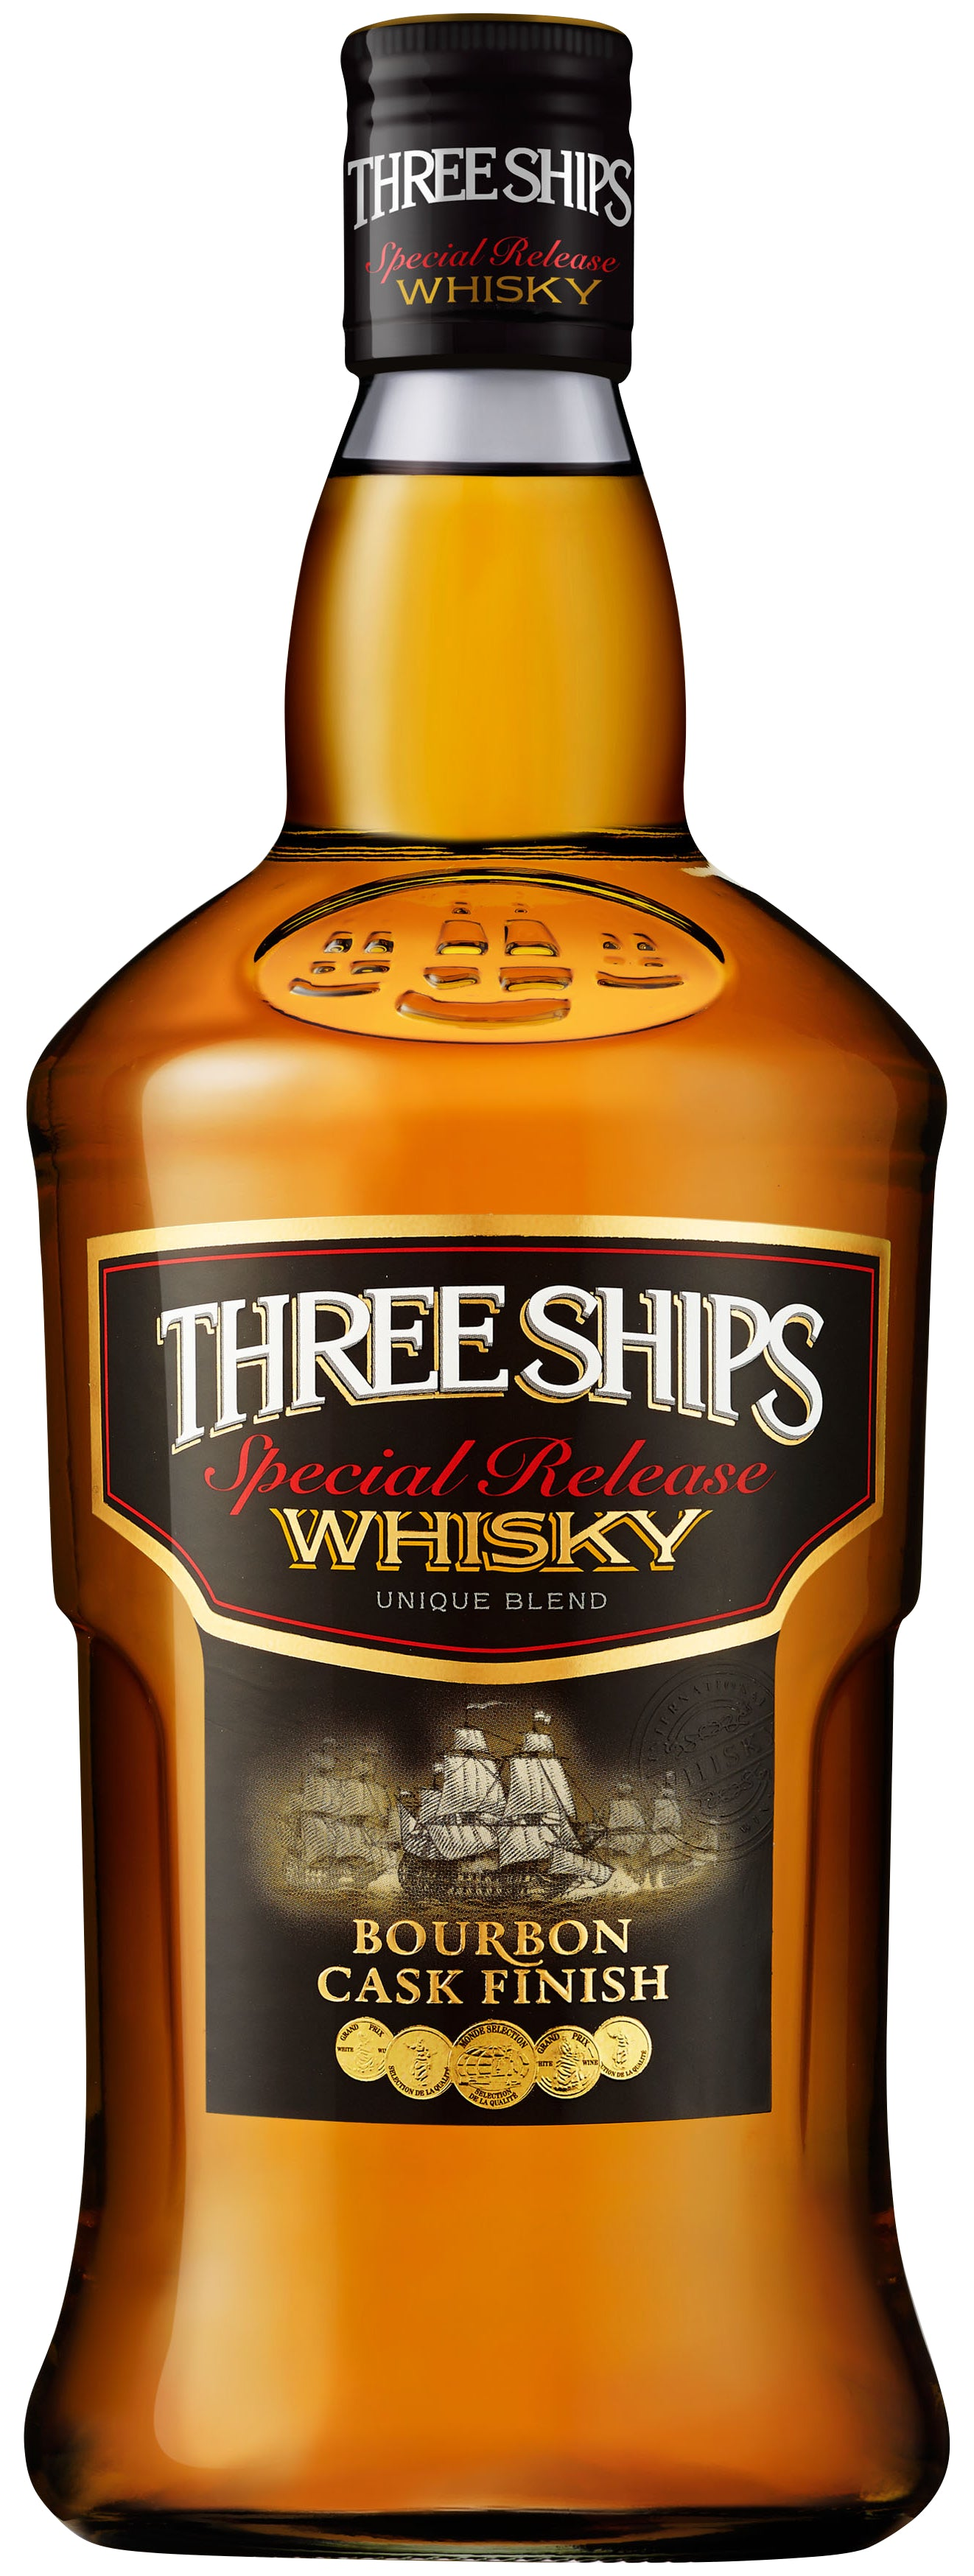 Three Ships Whisky Bourbon Cask Finish Nedbank gift box